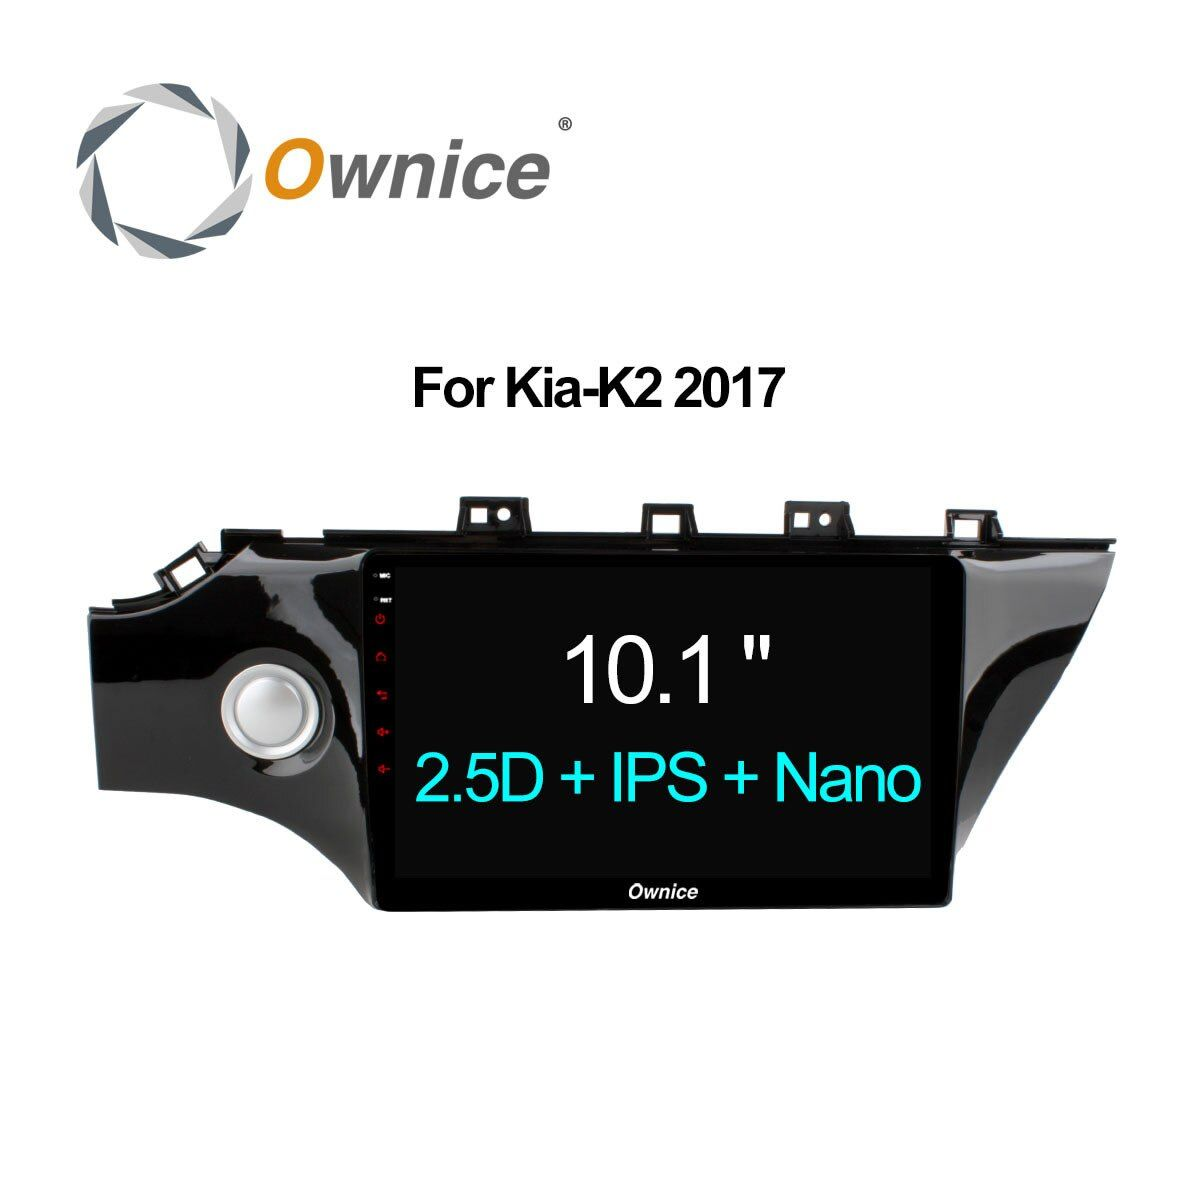 Ownice C500+ 2 din Car radio IPS 2.5D for 2017 Kia K2 Octa Core Android 6.0 car dvd player GPS navigation with 2G RAM , 32G ROM